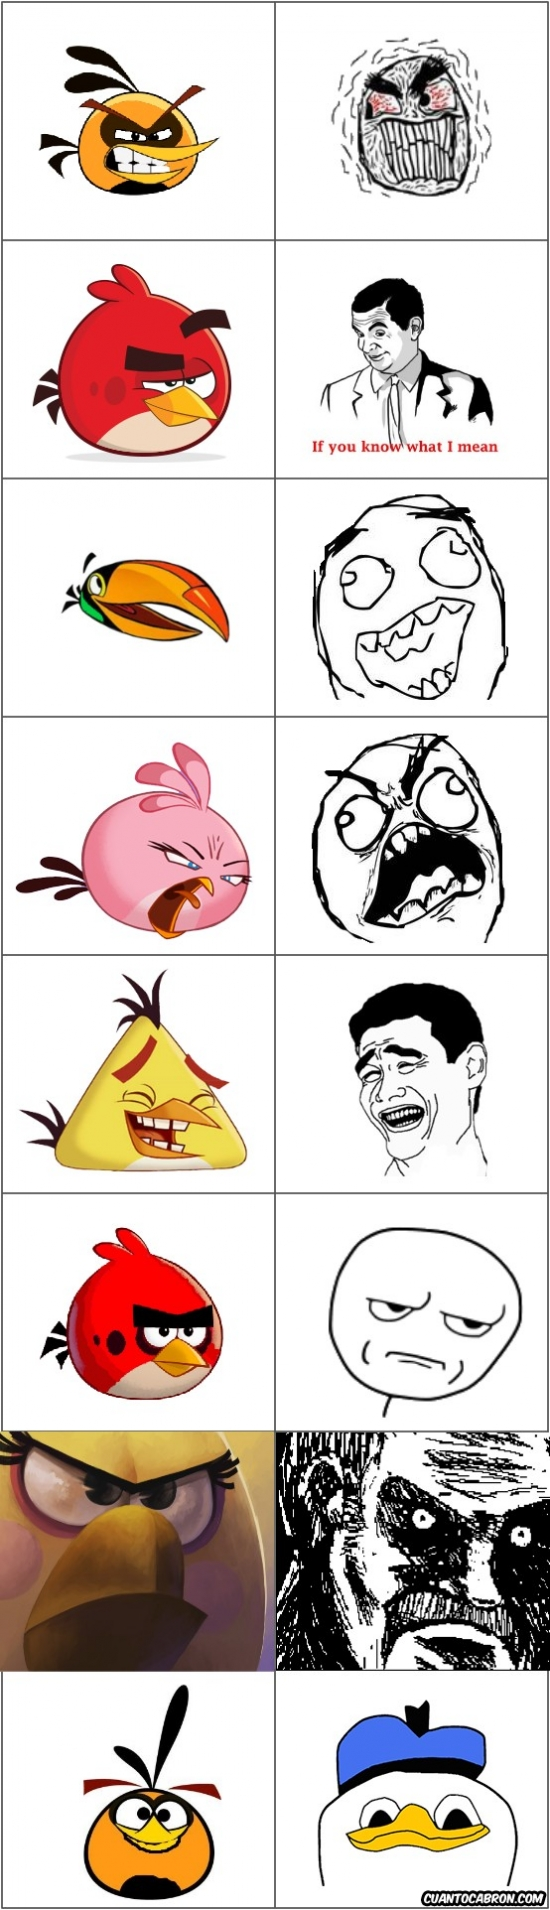 Mix - Angry Birds y sus memes